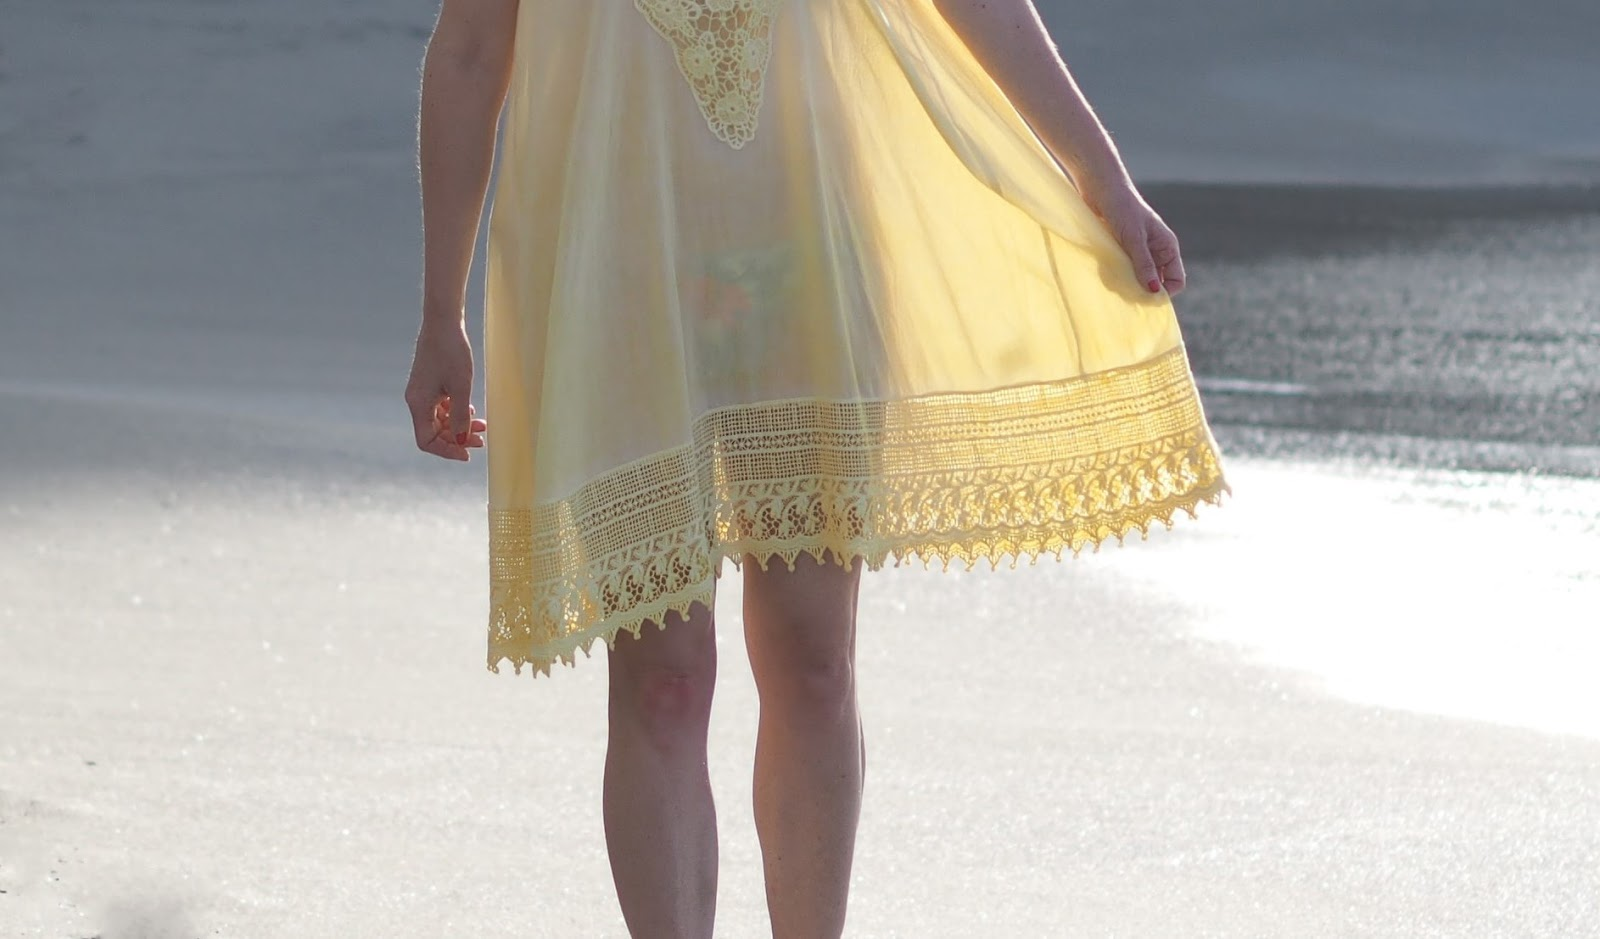 Floral bikini and yellow lace beach cover-up dress, Nerja